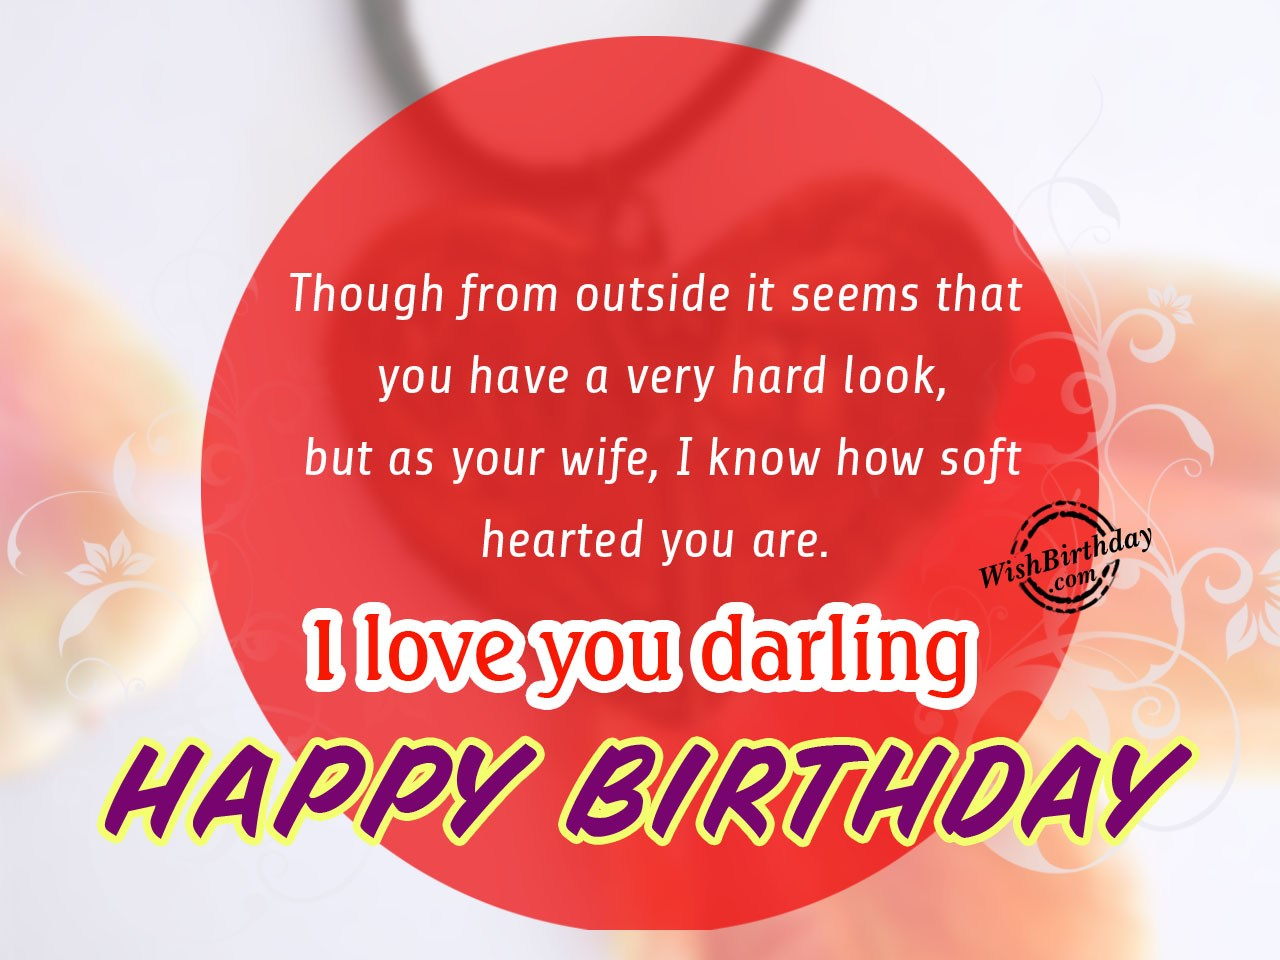 birthday greeting cards for husband images ; Though-from-outside-it-seems-that